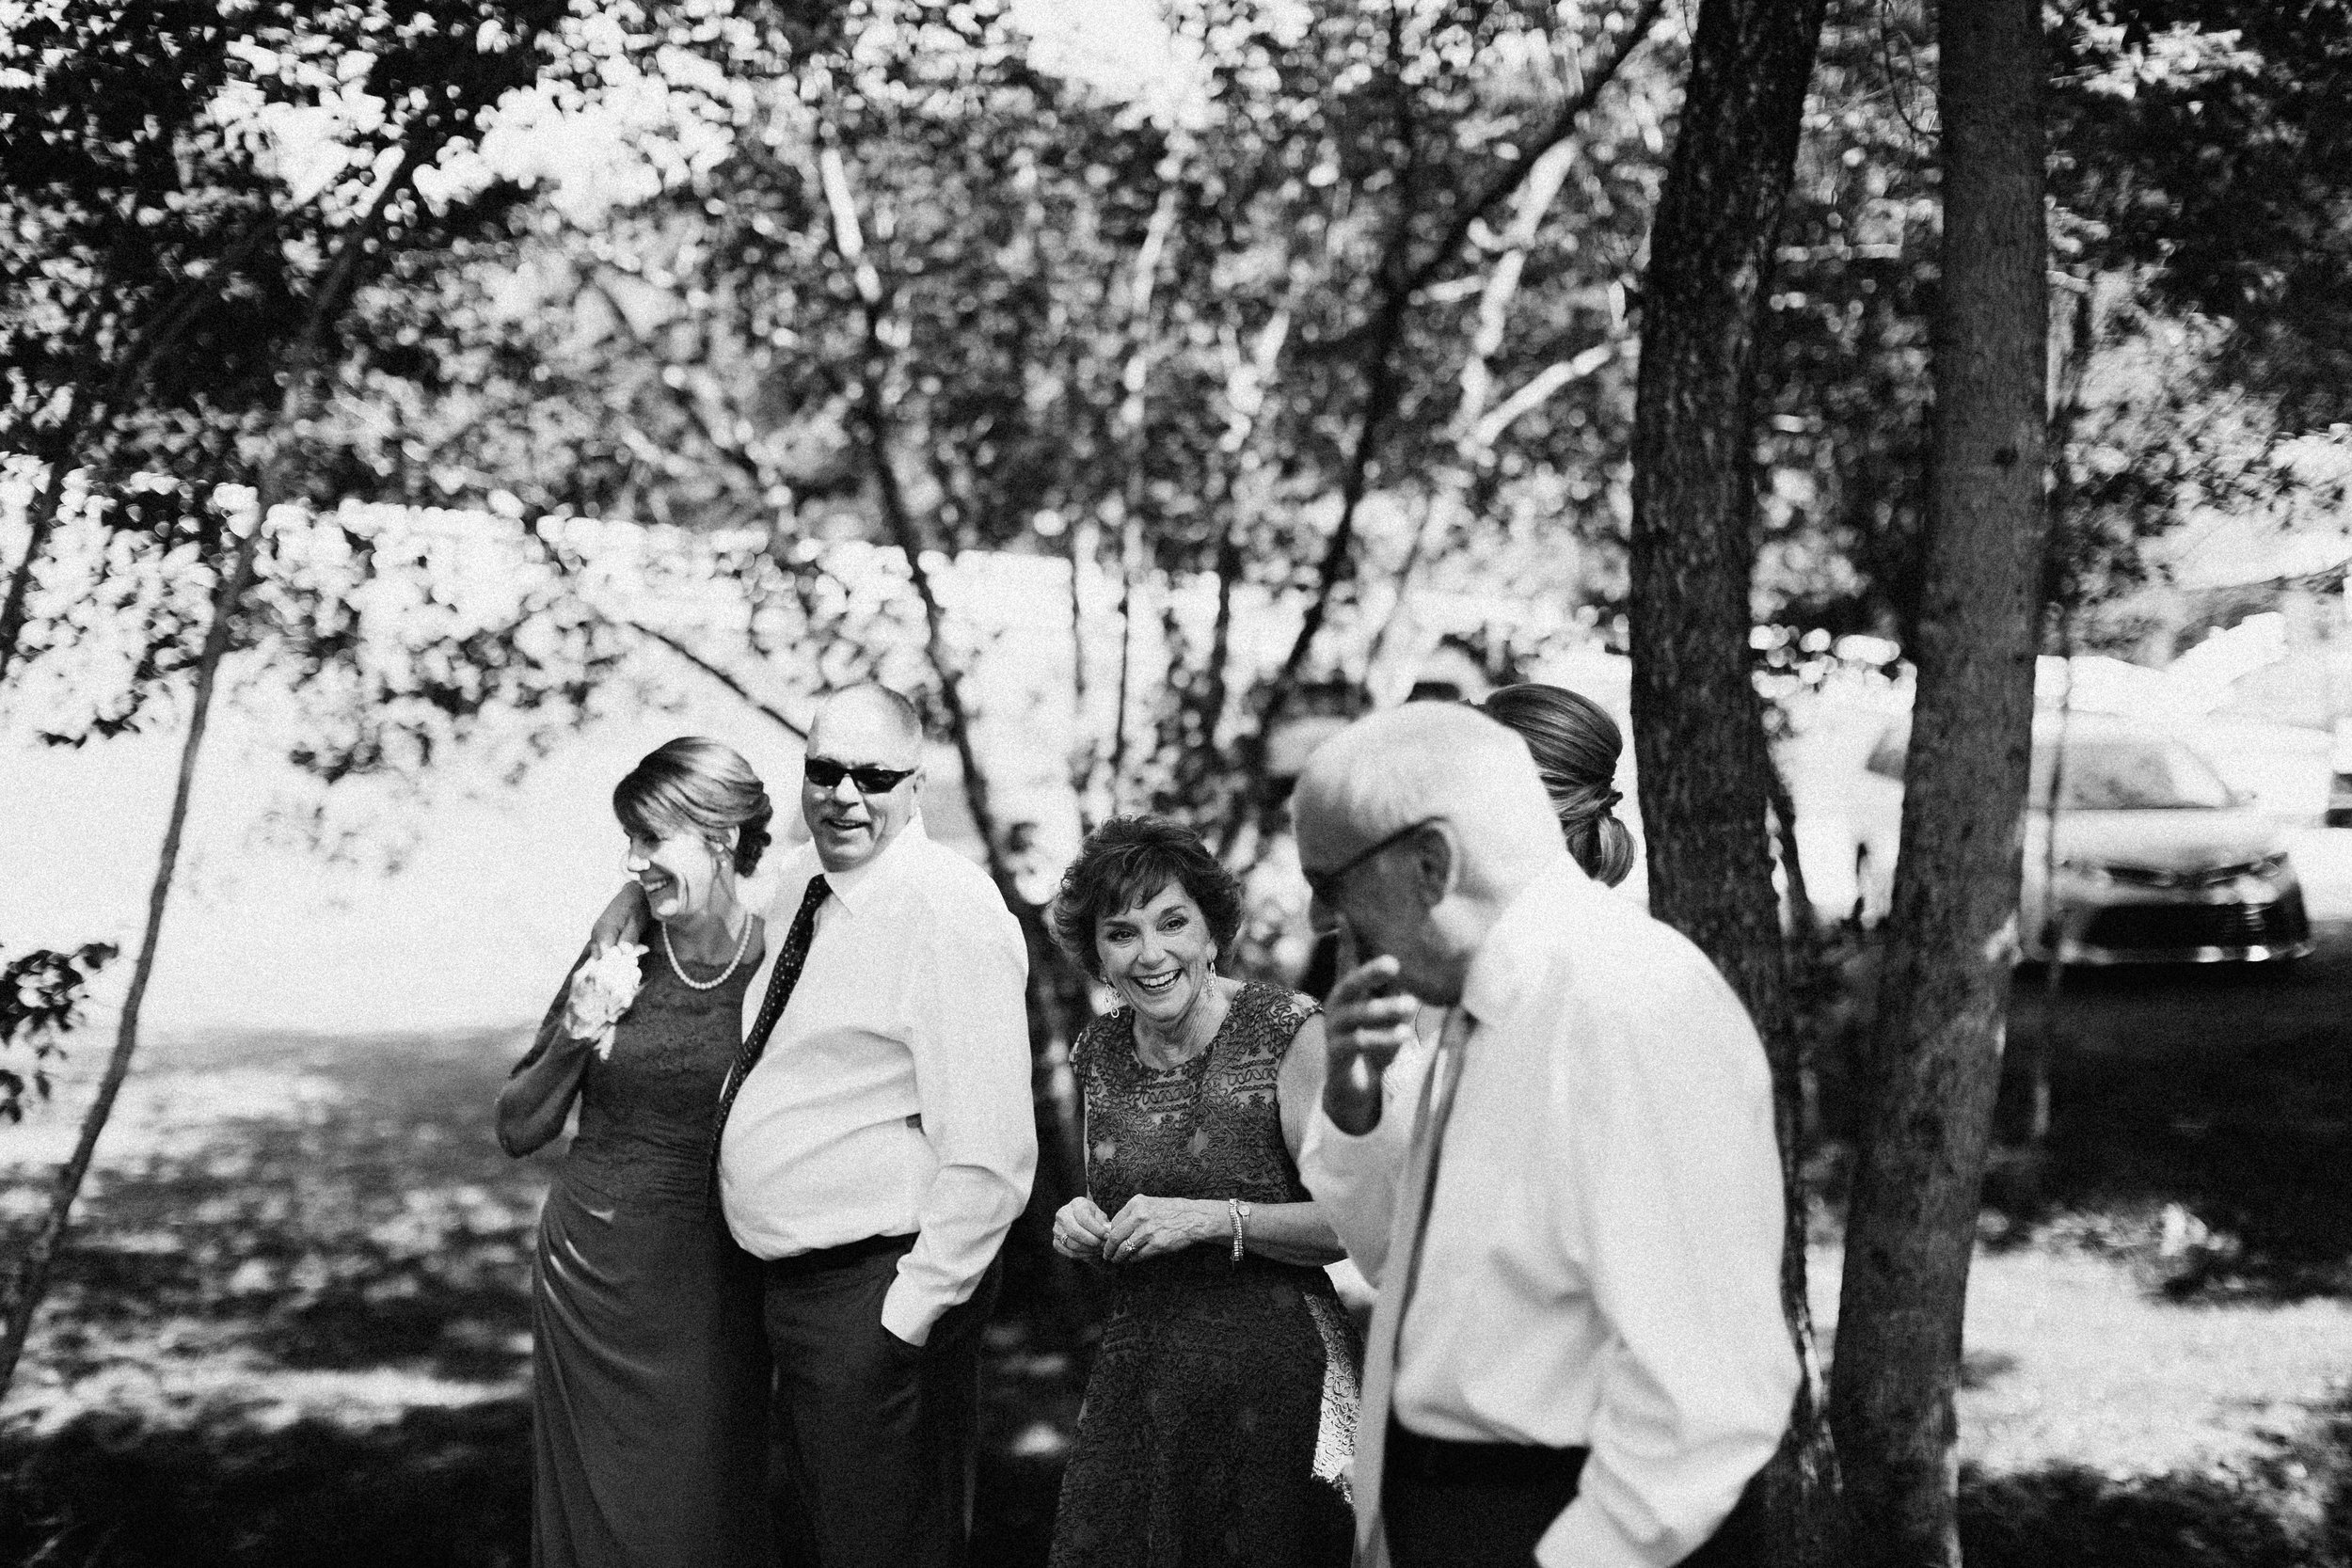 cleveland_georgia_mountain_laurel_farm_natural_classic_timeless_documentary_candid_wedding_emotional_photojournalism_river_west_1264.jpg